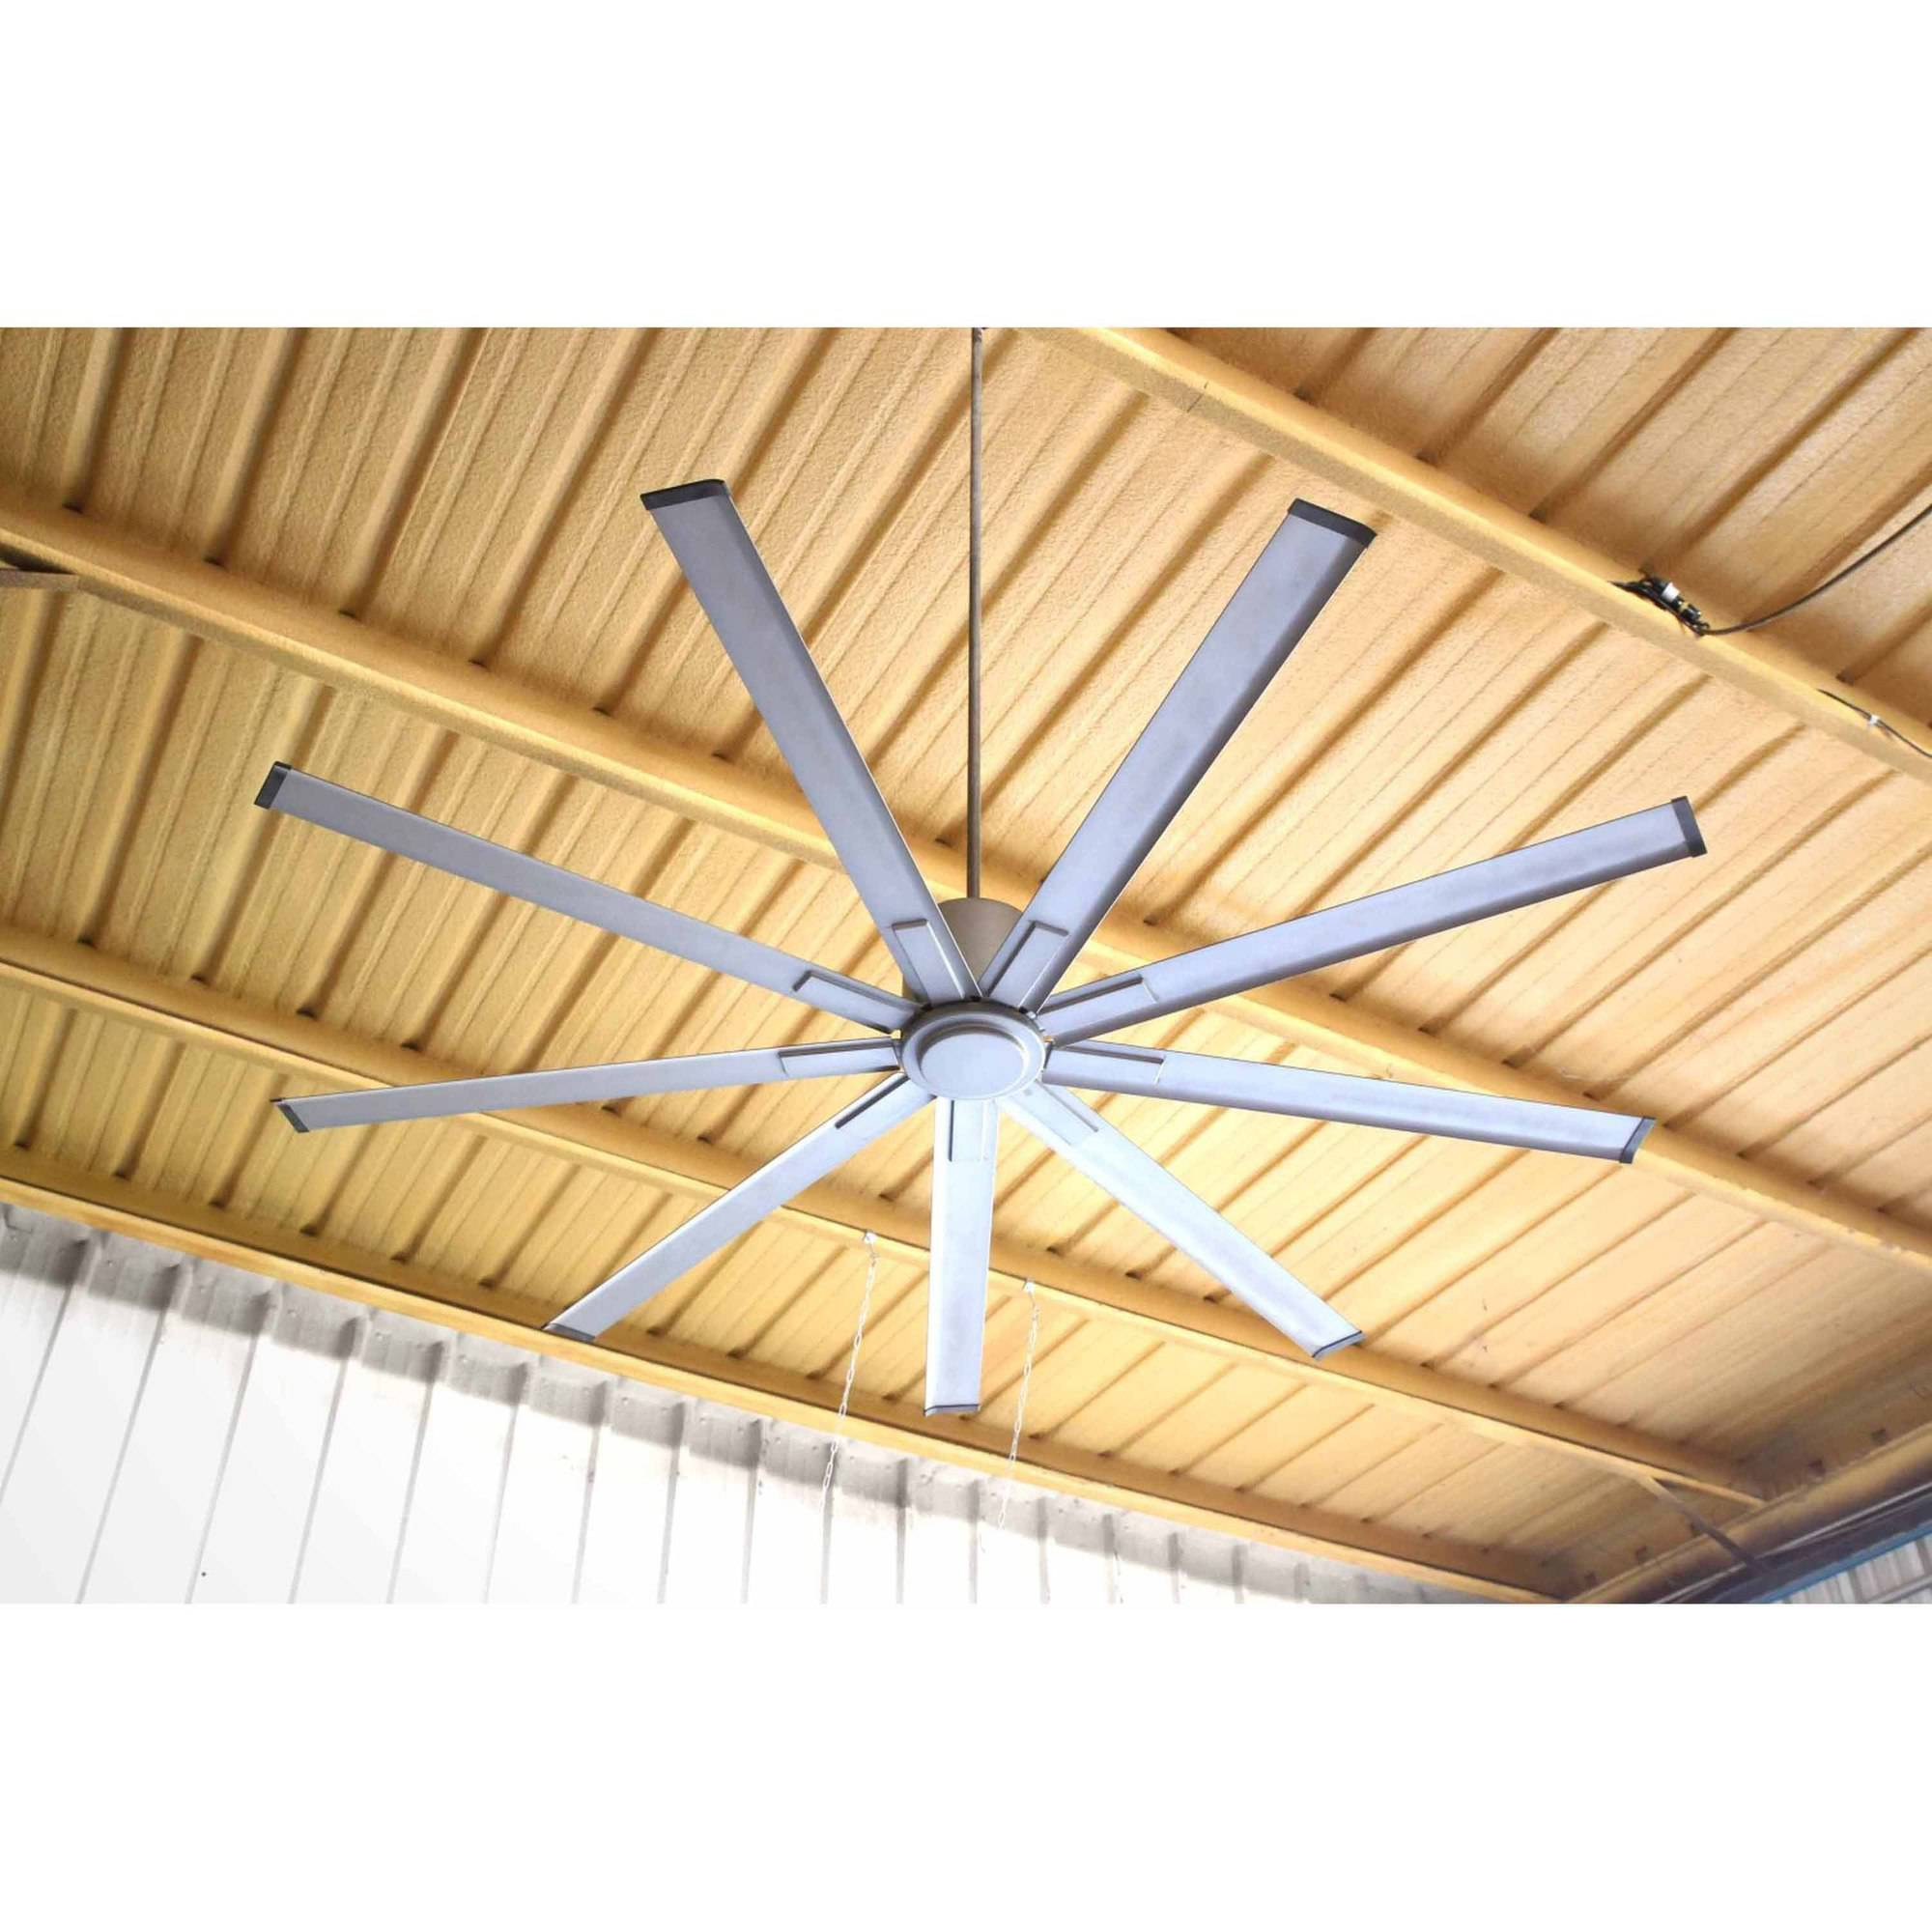 "Big Air 96"" 6 Speed Industrial Ceiling Fan in Brushed Nickel"